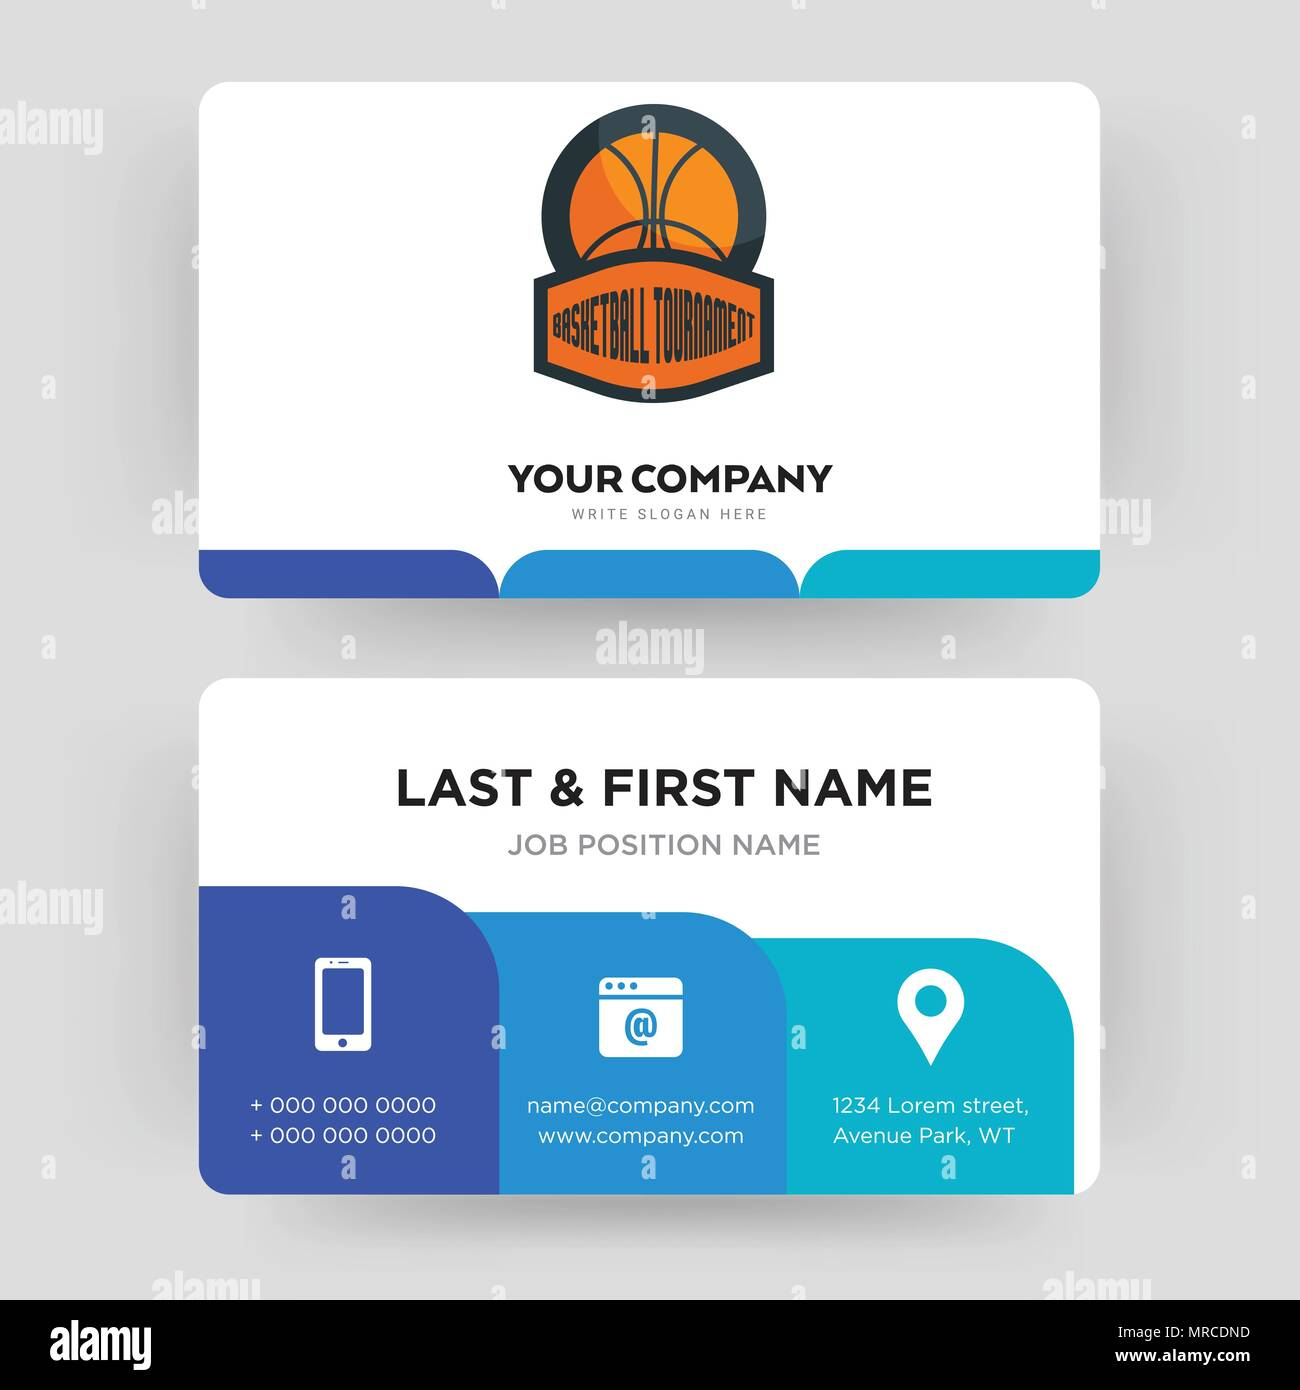 basketball tournament, business card design template, Visiting for ...